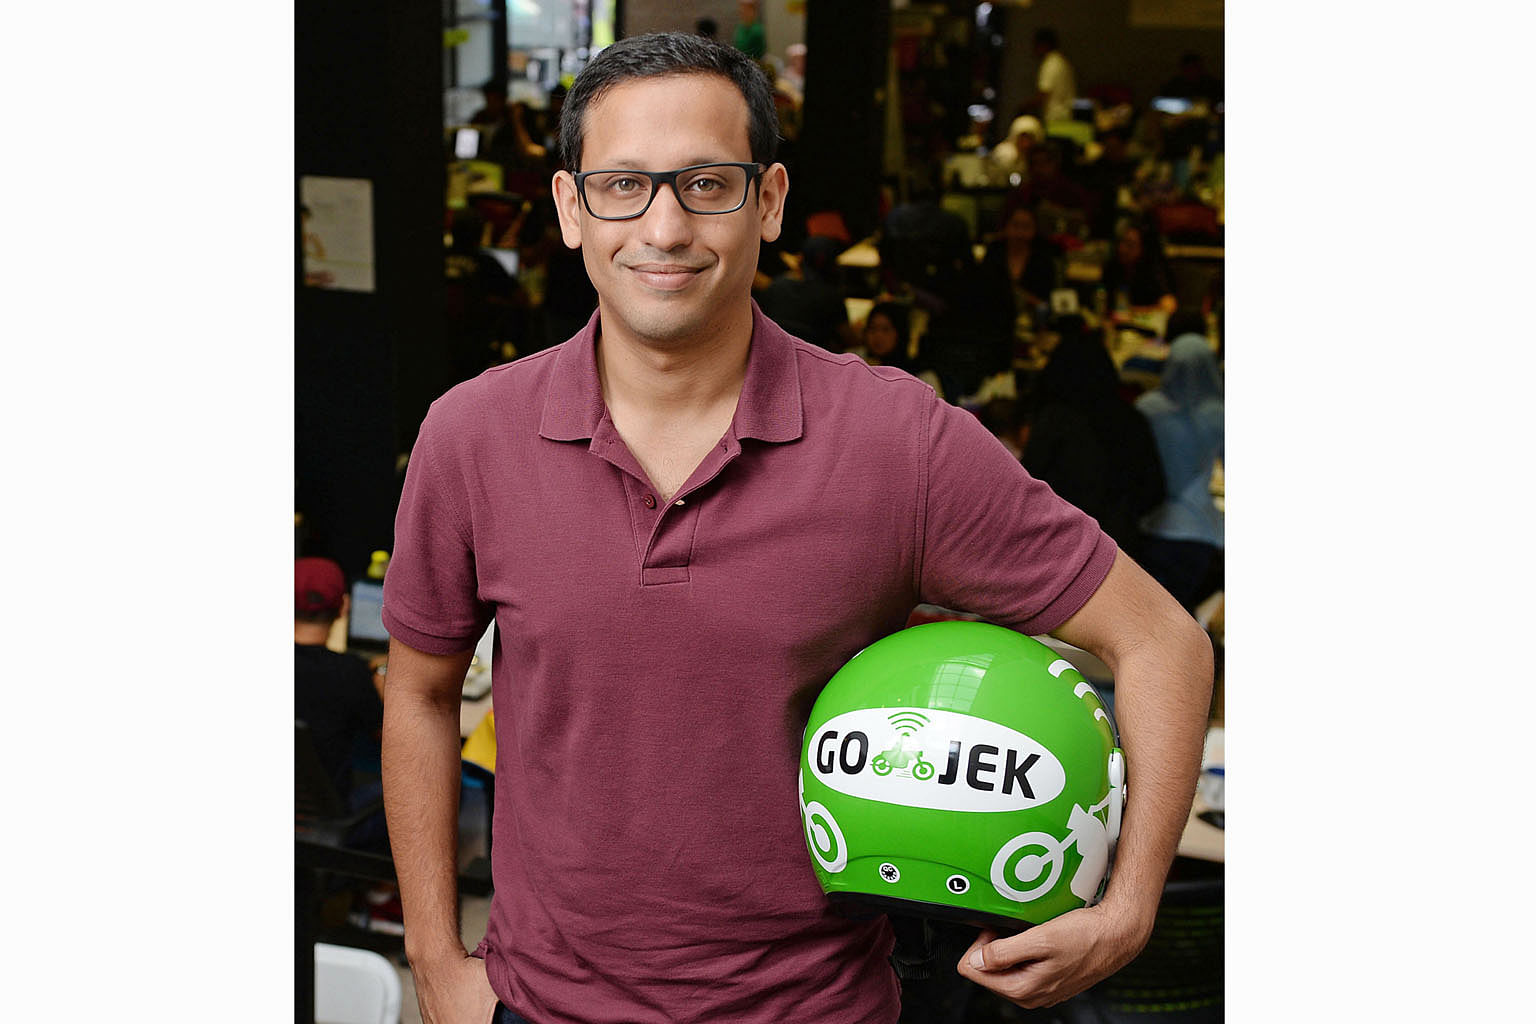 Mr Nadiem Makarim's company Gojek has announced plans to expand to Vietnam, Thailand, the Philippines and Singapore.